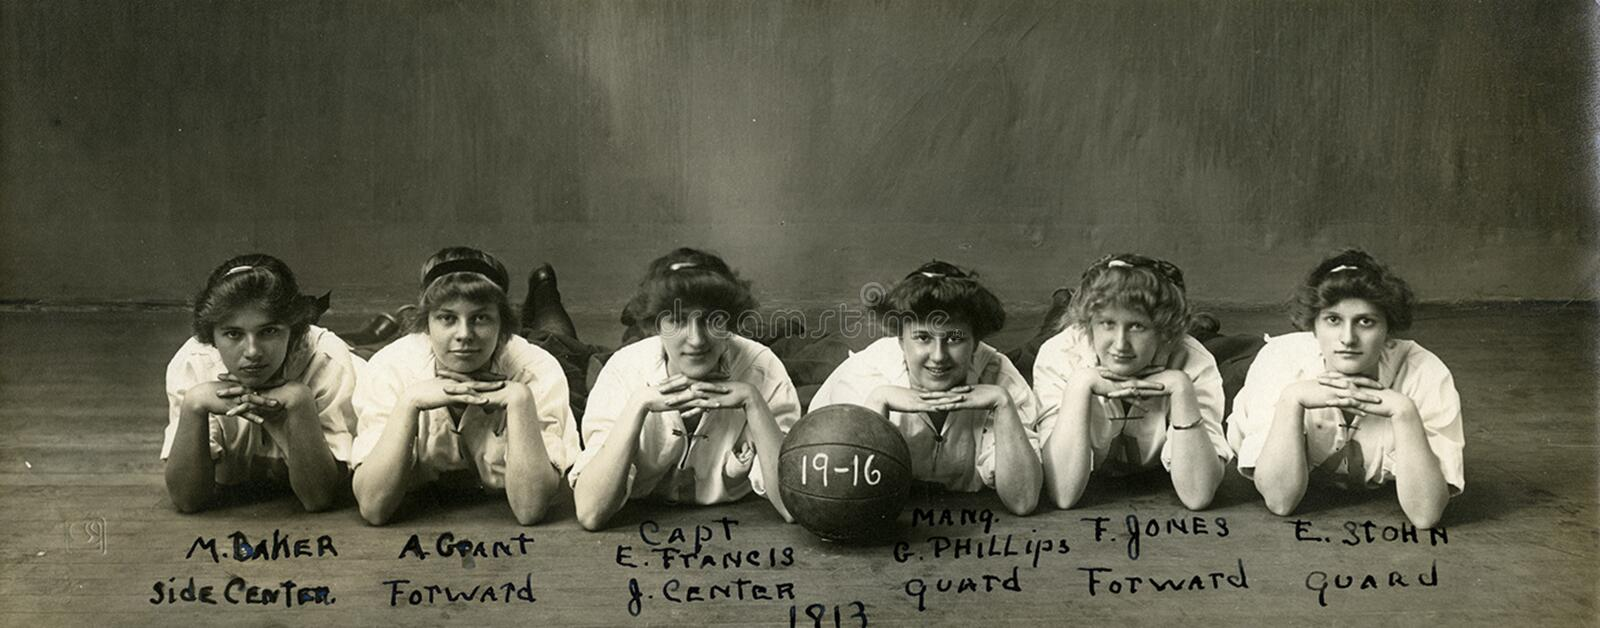 Abbot Academy Basketball Team, 1913 stock images